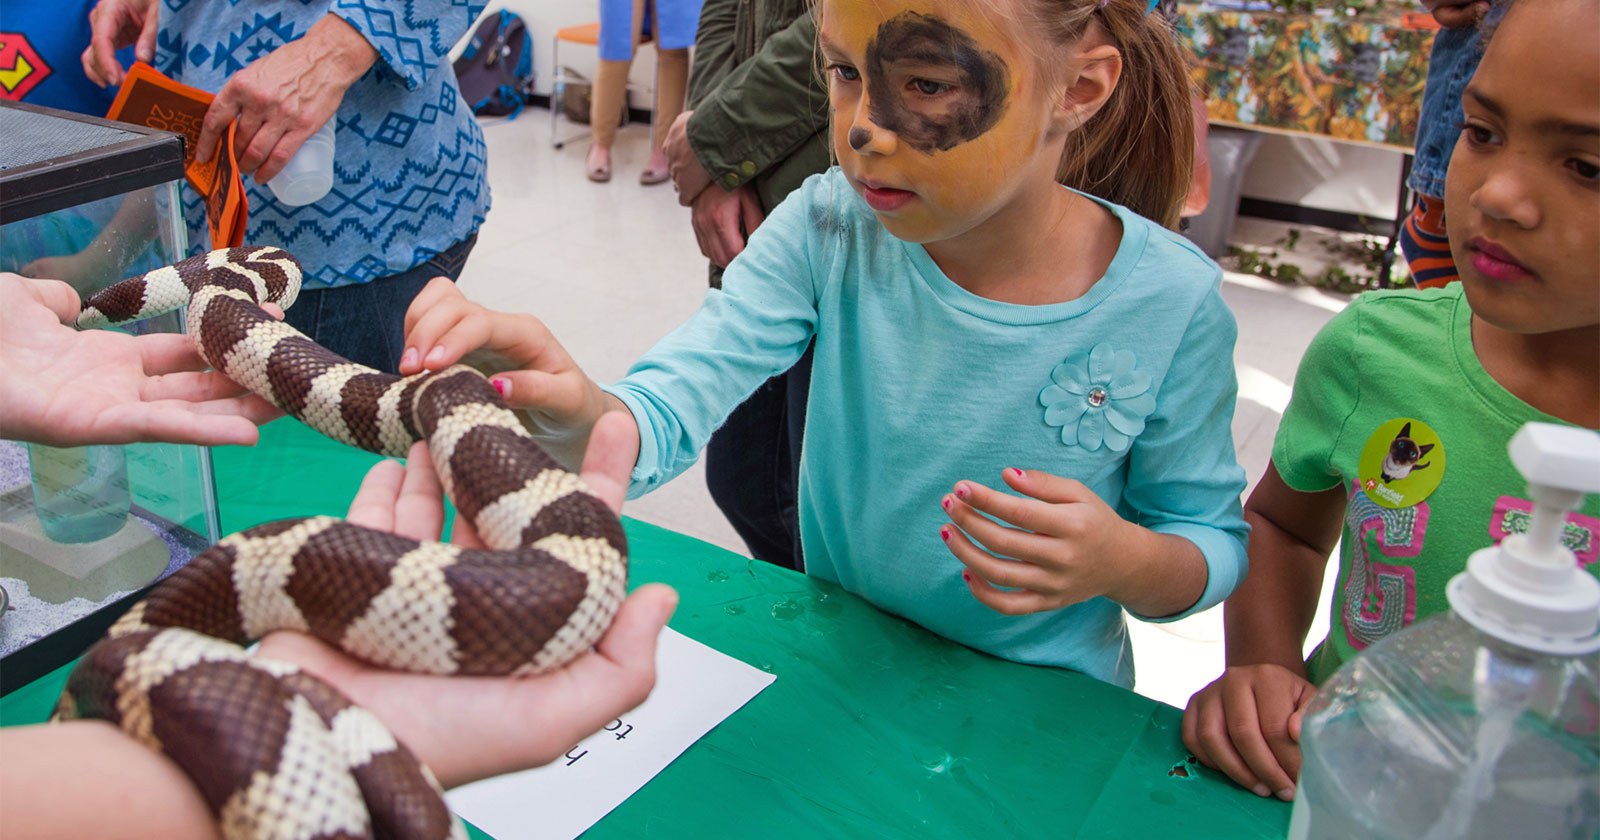 [child touches snake at Open House]